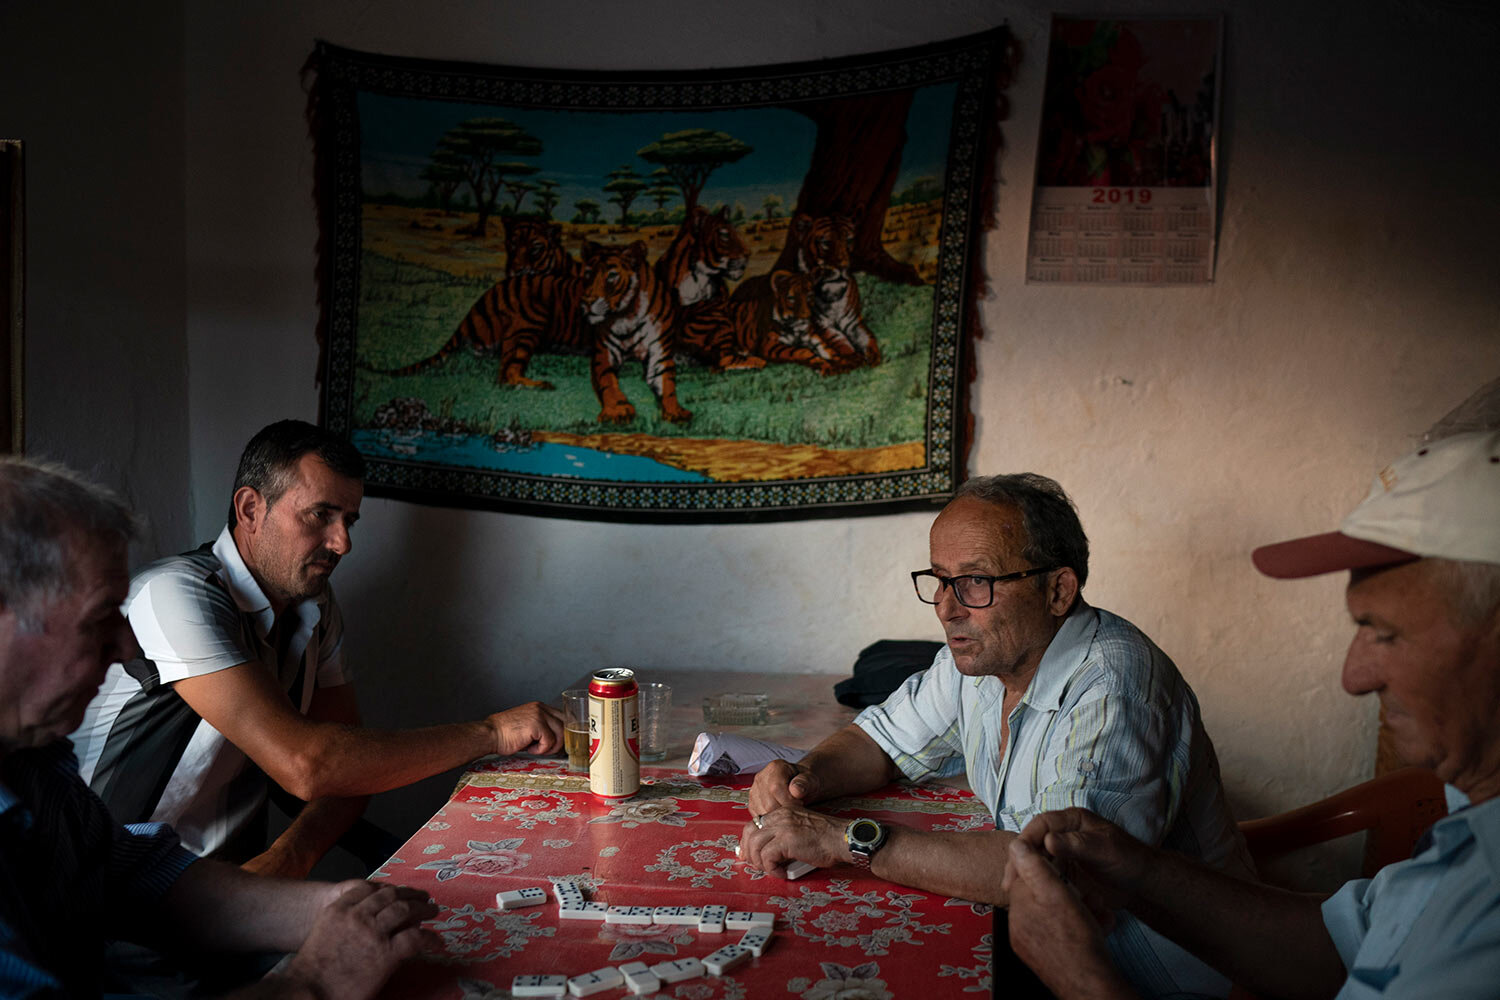 Residents play dominoes in a small bar in the village of Kute, Albania. (AP Photo/Felipe Dana)